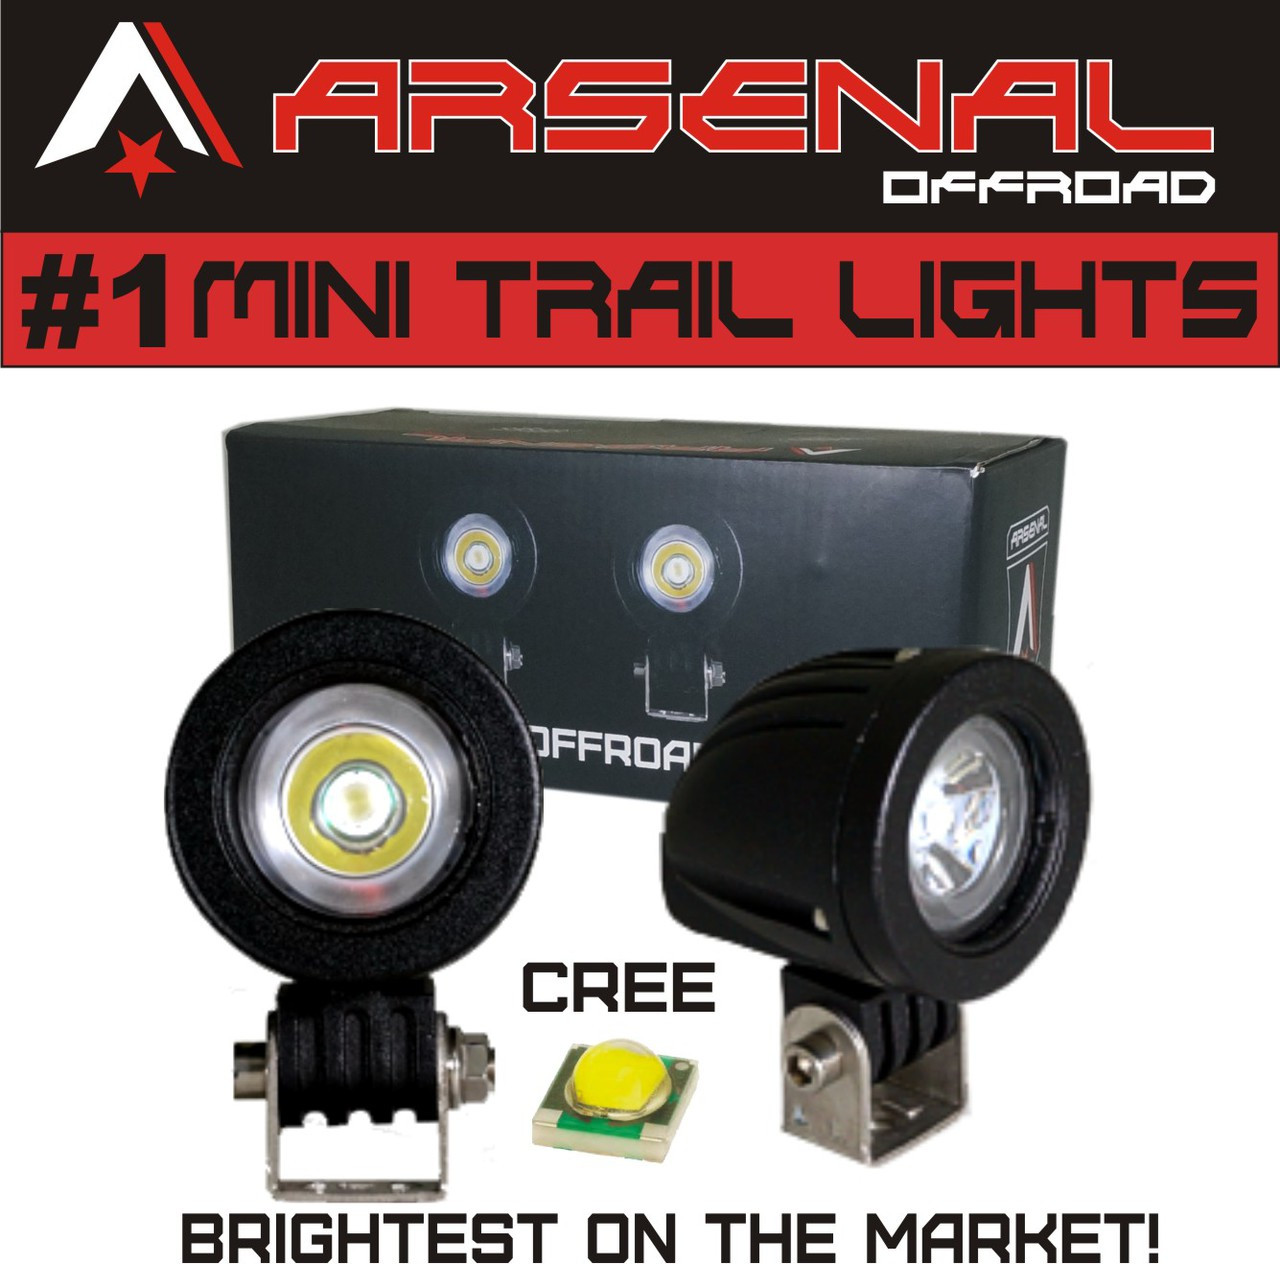 Cree Led Lights >> 1 Mini Trail Lights 2017 Design By Arsenal Offroad 20w Cree Led Spot Motorcycle Offroad Dual Sport Enduro Fog Trail Head Light For Xr Drz Exc Dirt